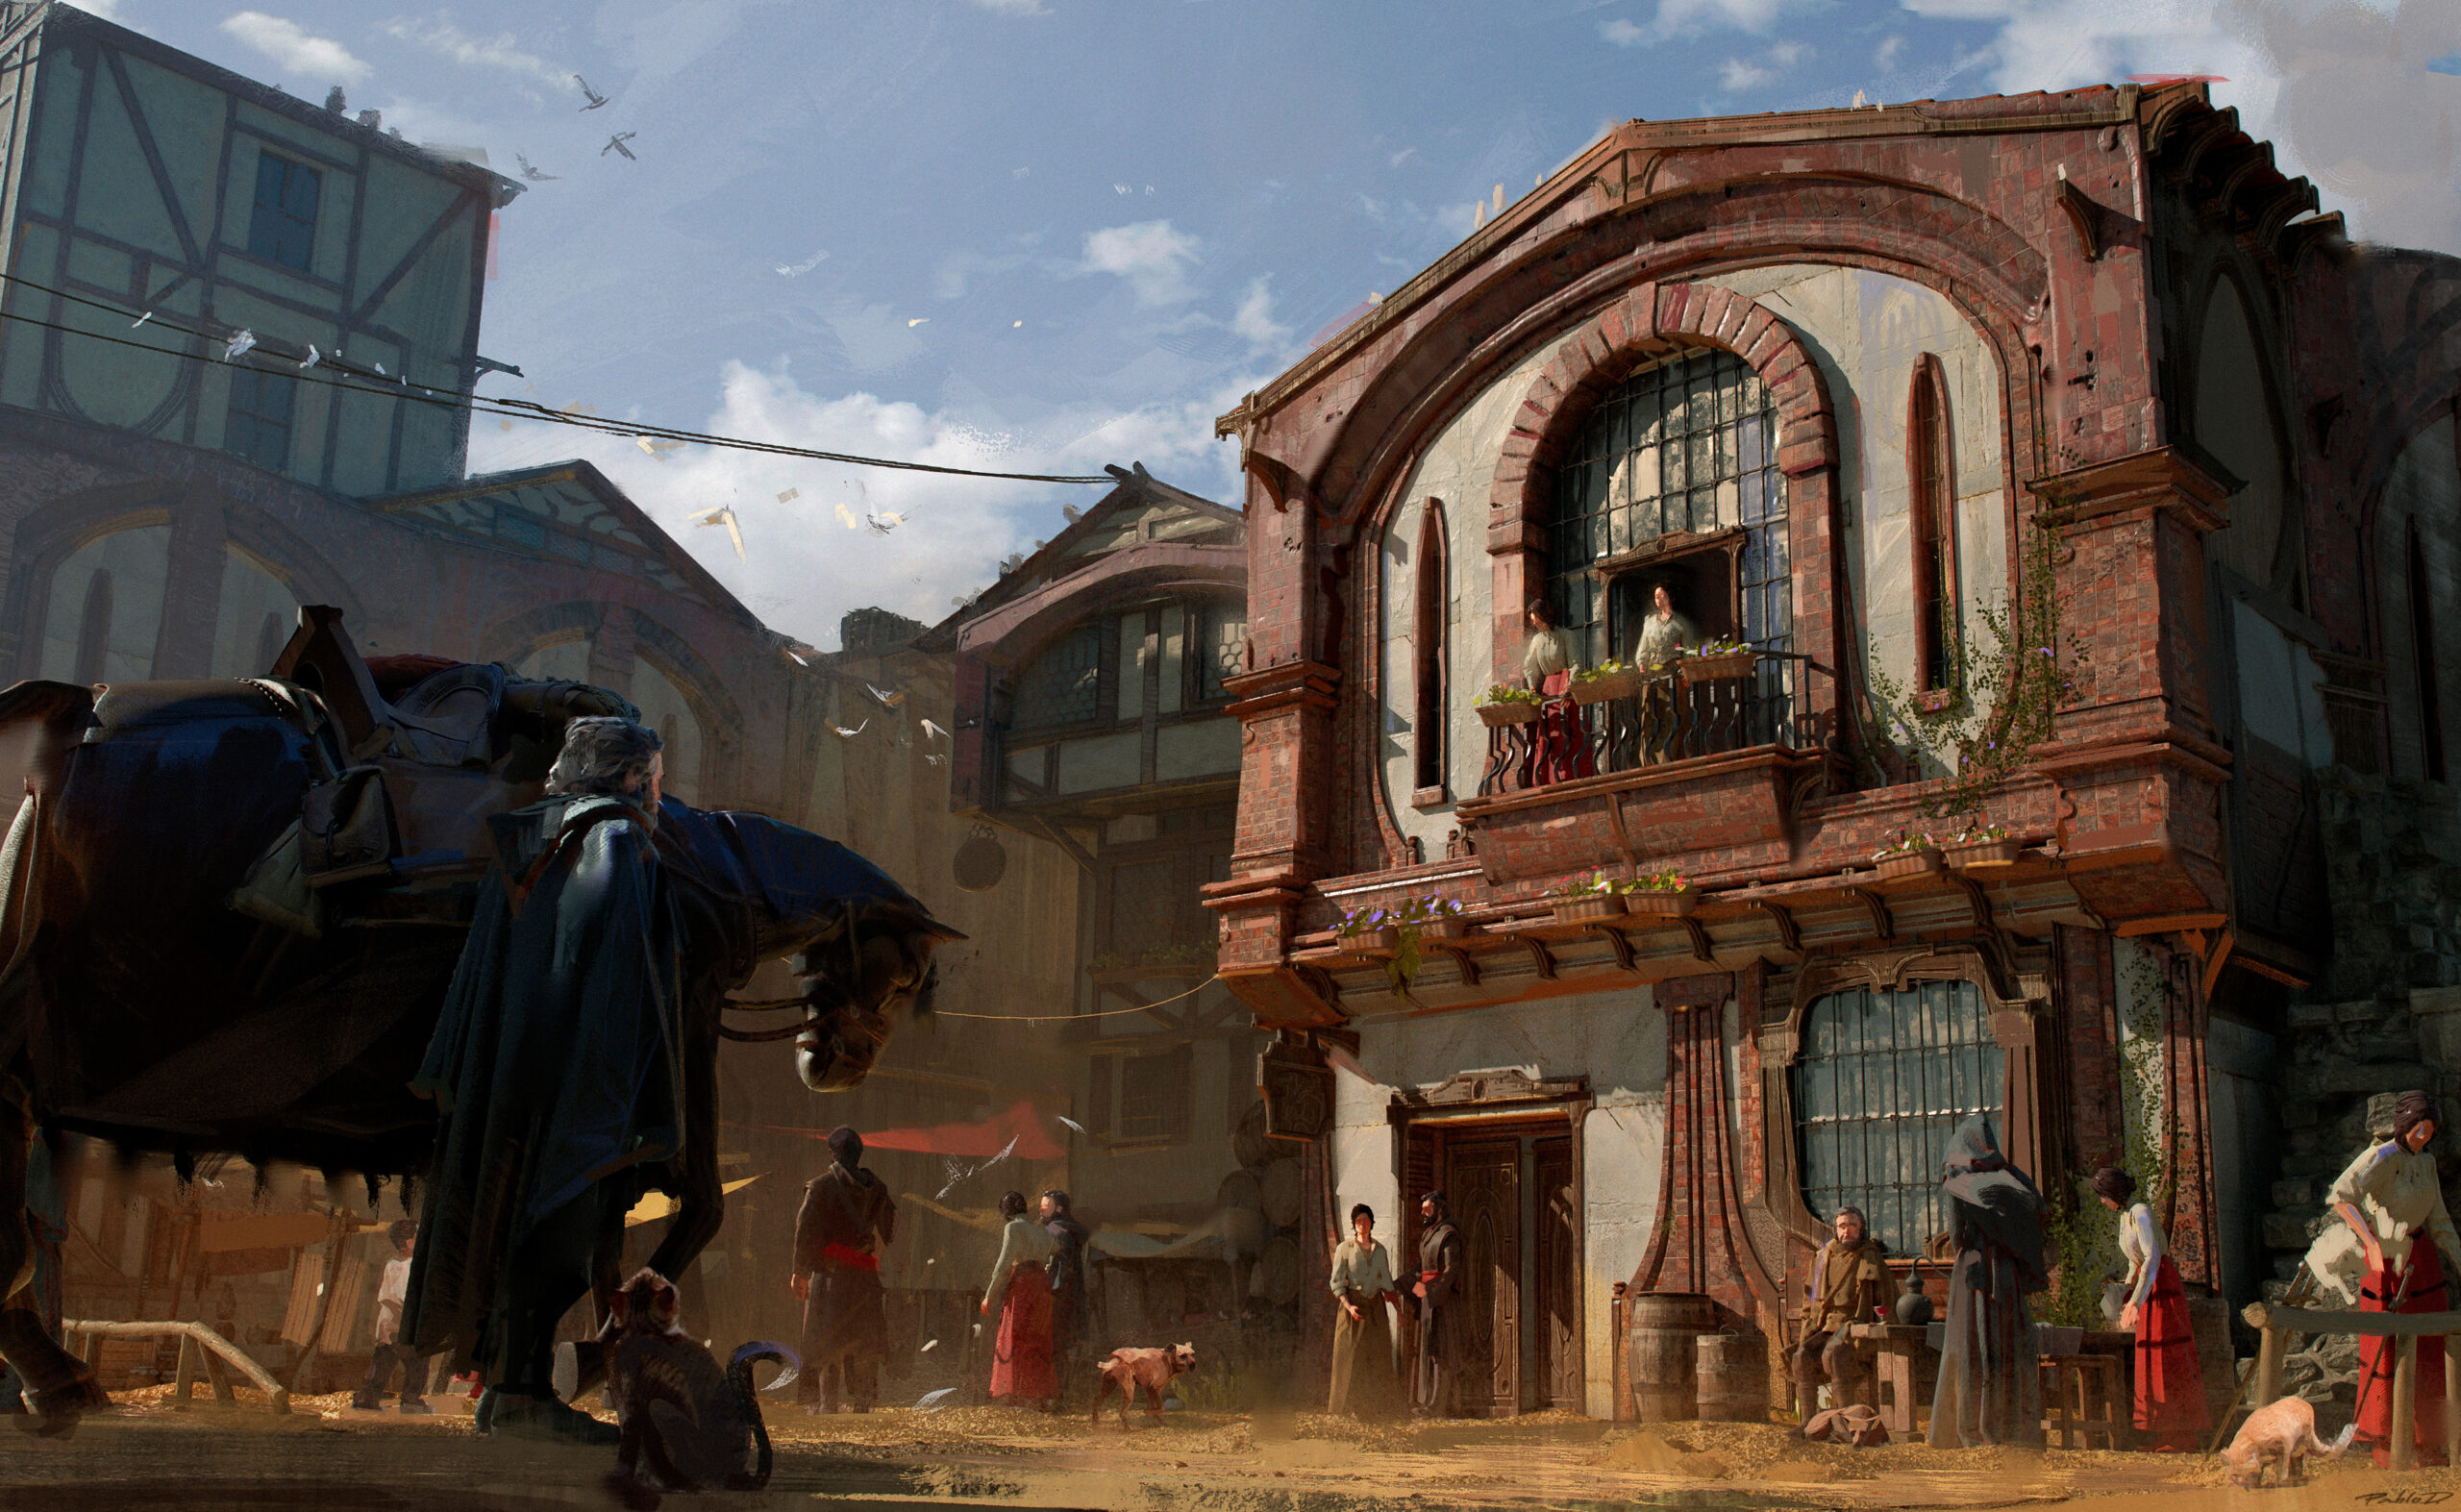 Personal Painting Fantasy architecture medieval concept worldbuilding design zbrush photoshop